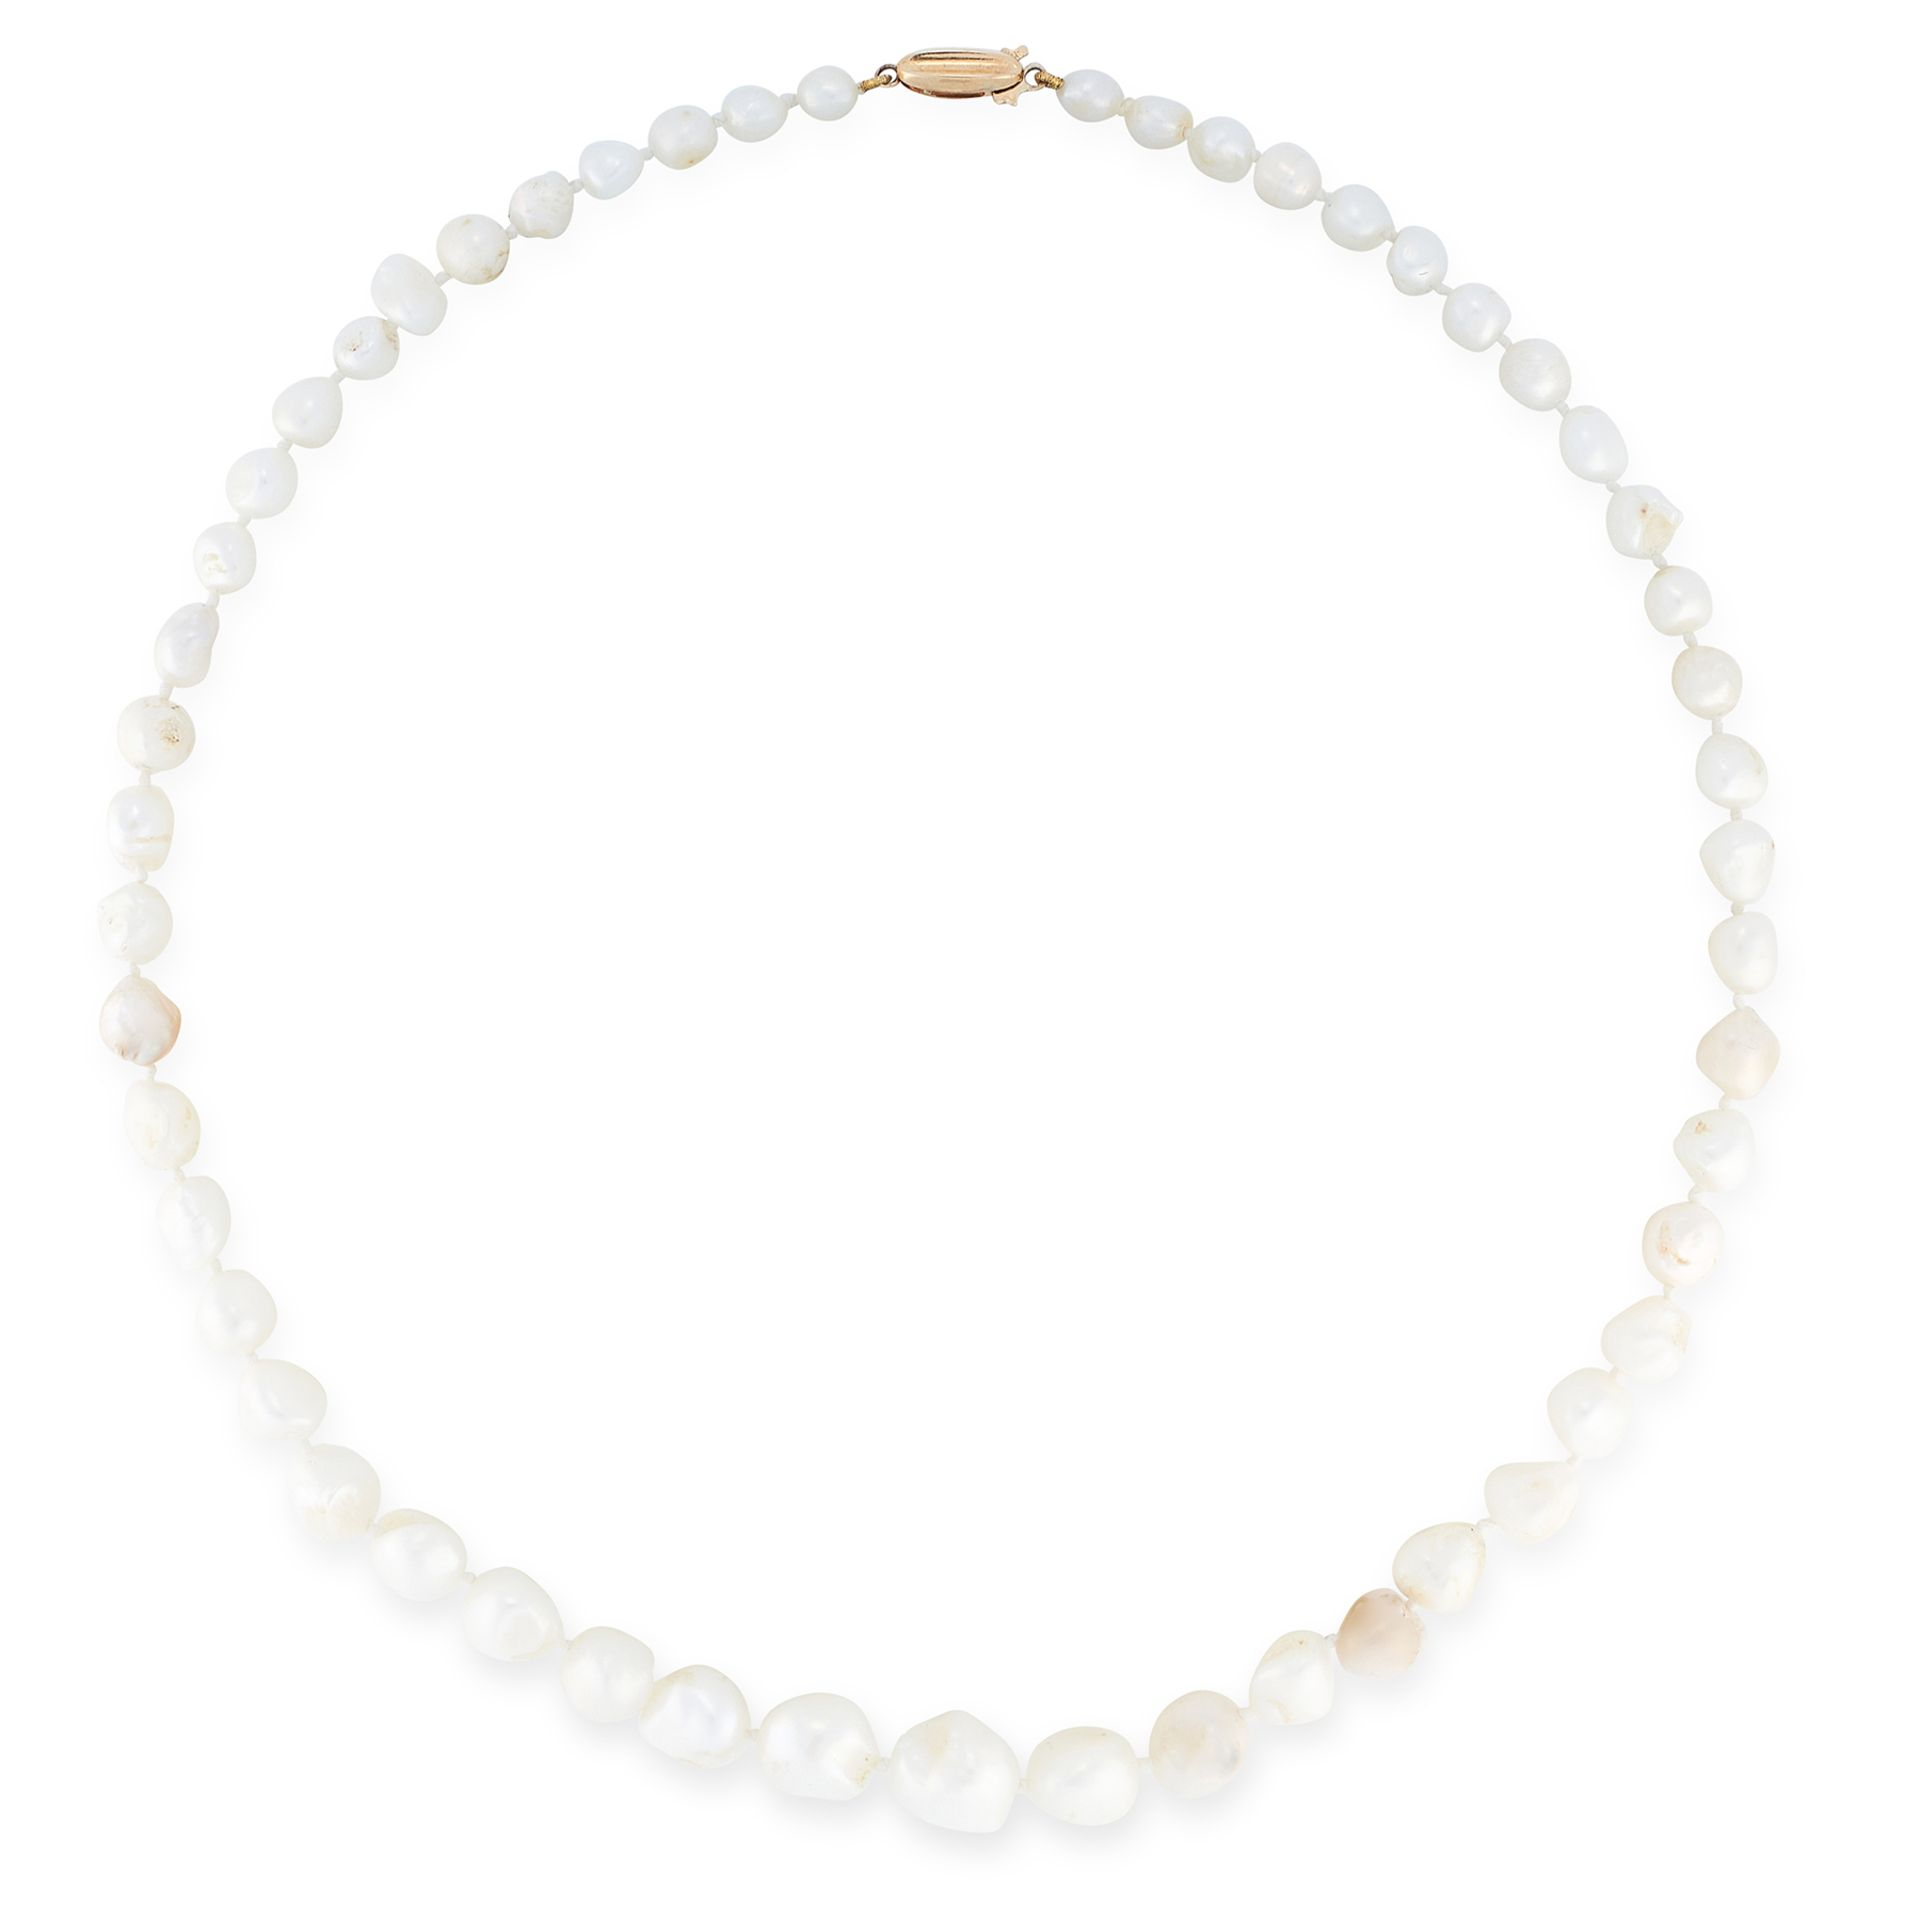 A PEARL NECKLACE comprising a single row of graduated baroque pearls, set on a gold clasp, marked